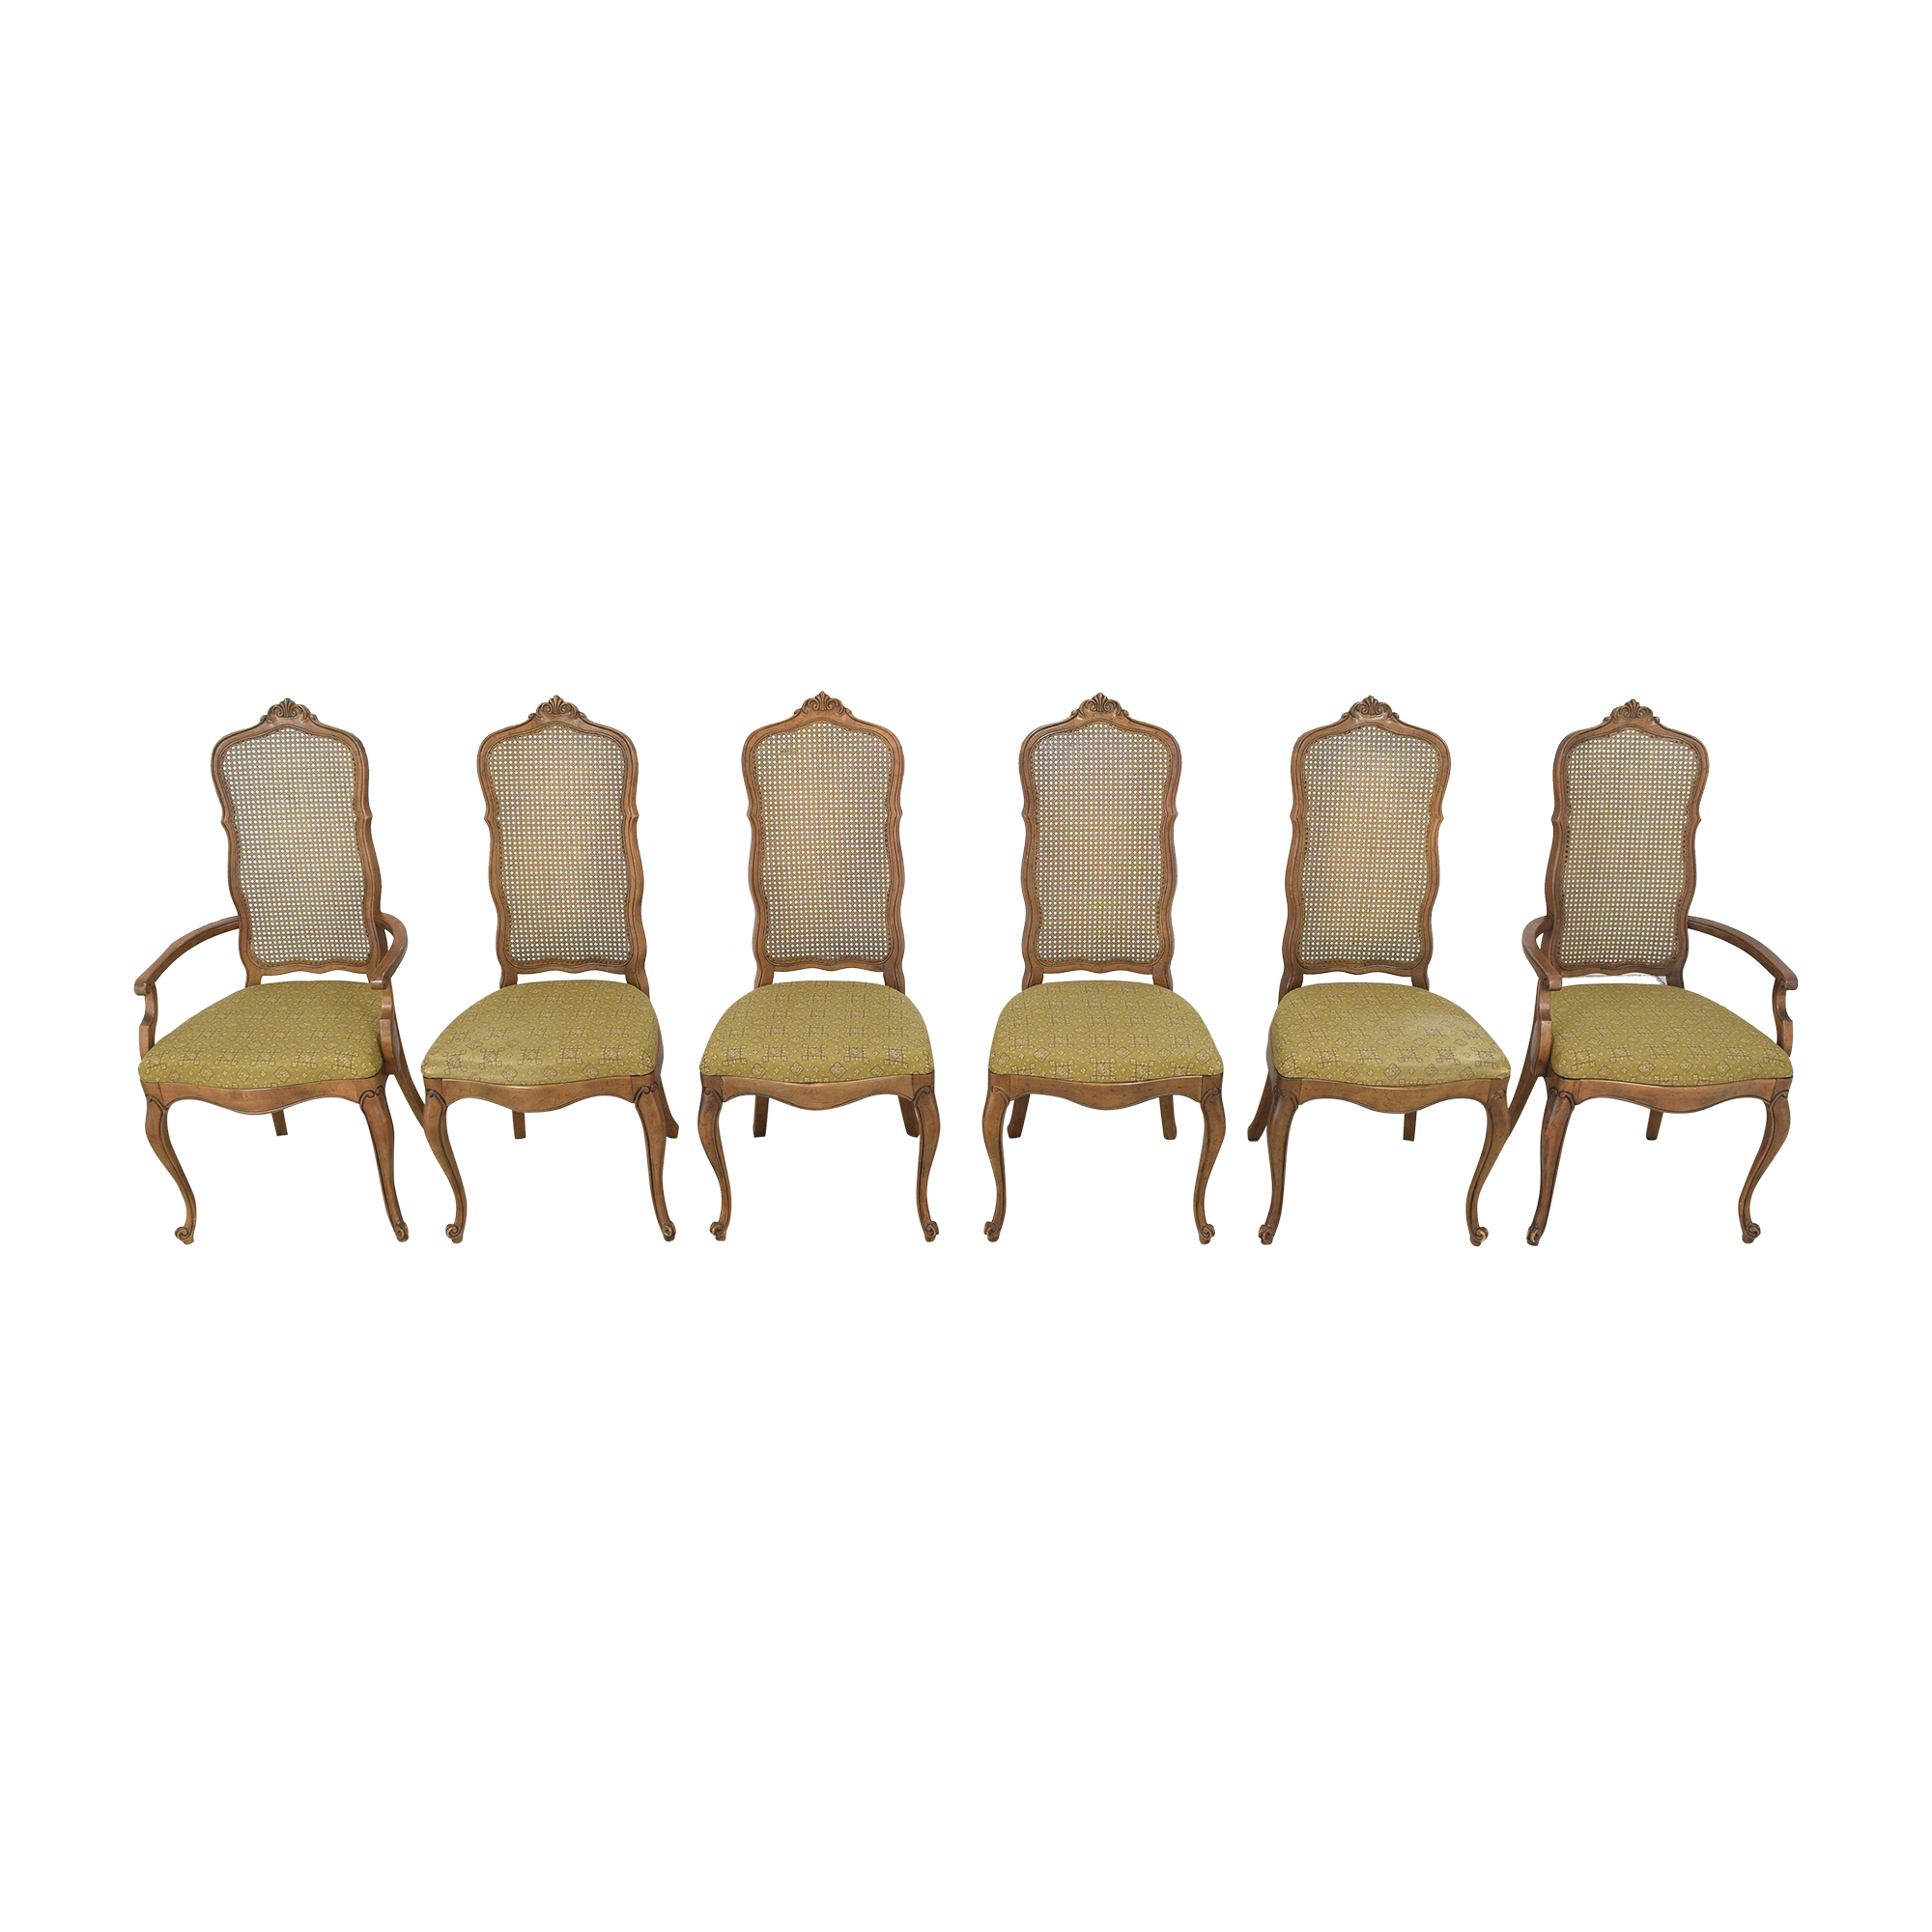 Drexel Drexel Touraine Dining Chairs Dining Chairs